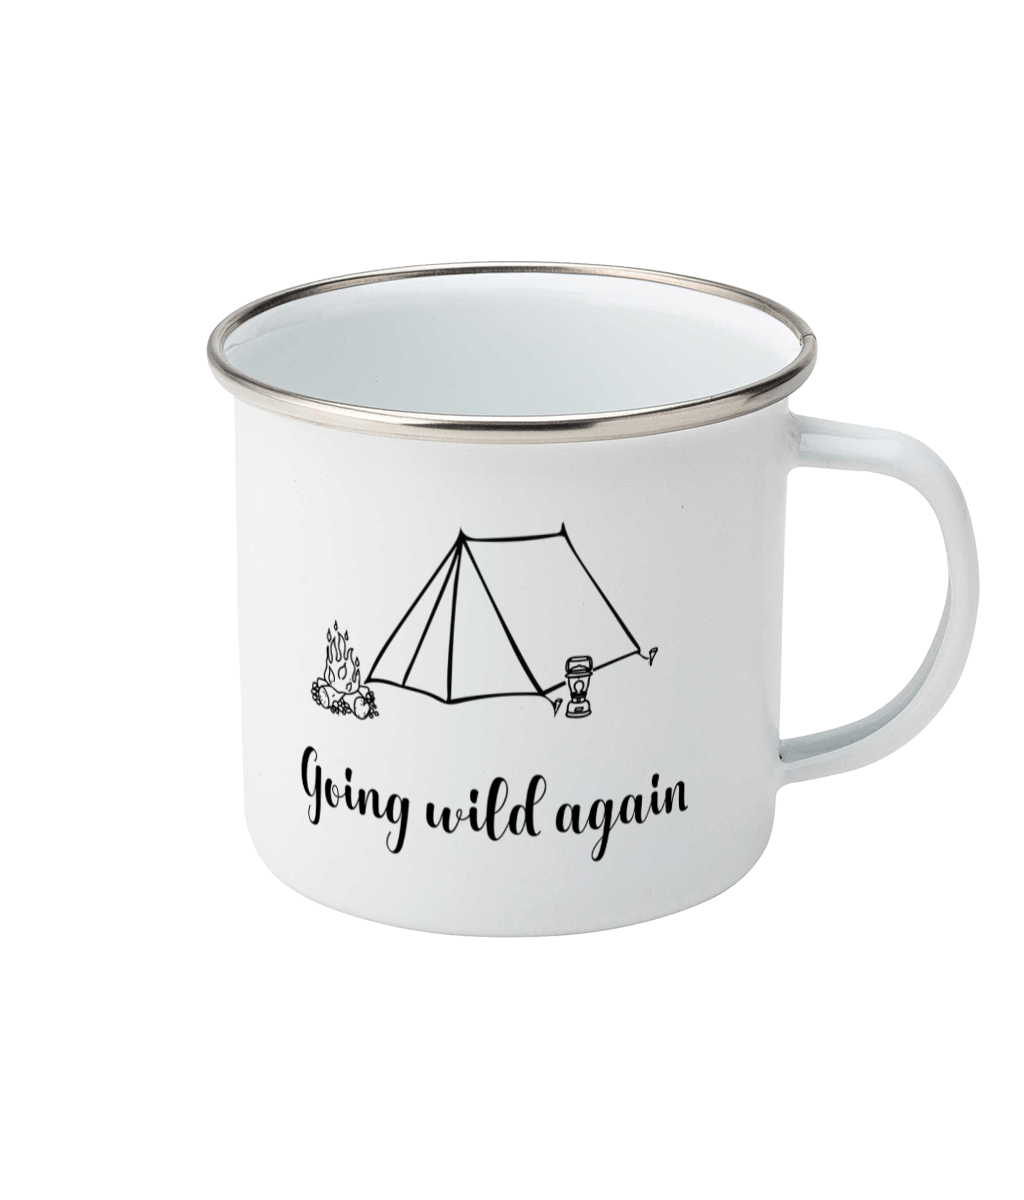 black and white camping design on a white enamel mug